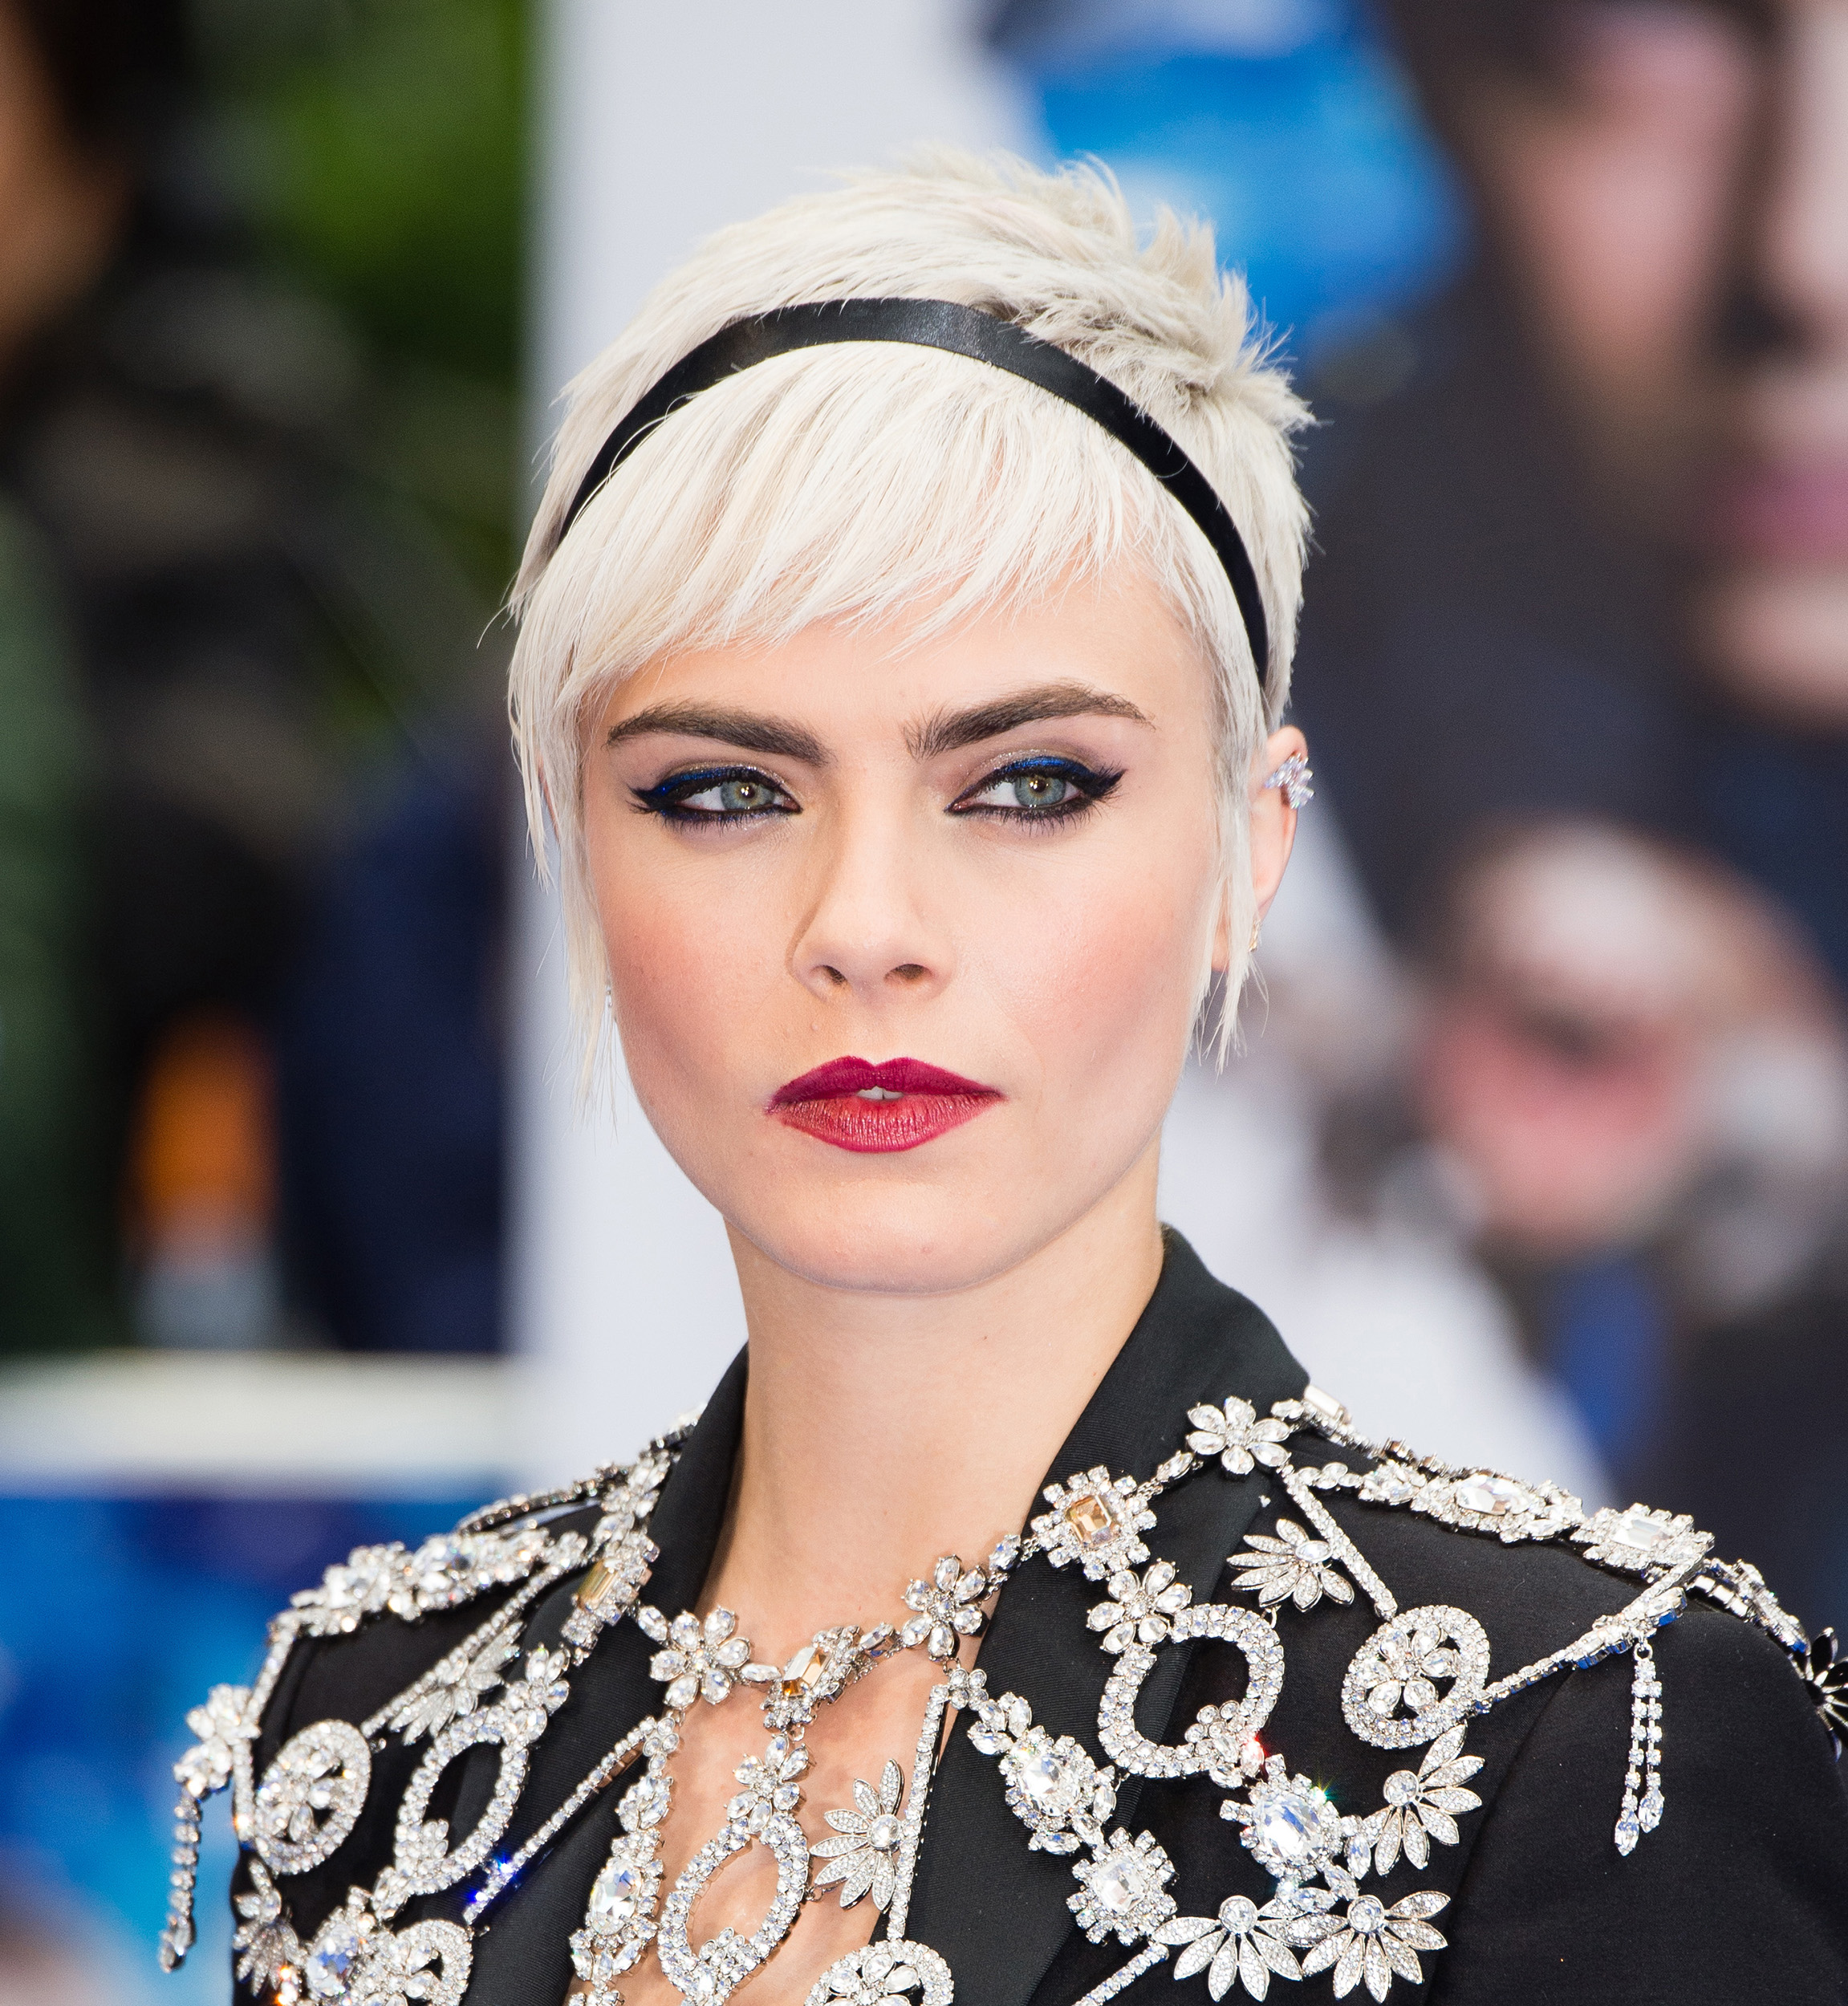 Image: Cara Delevingne attends the